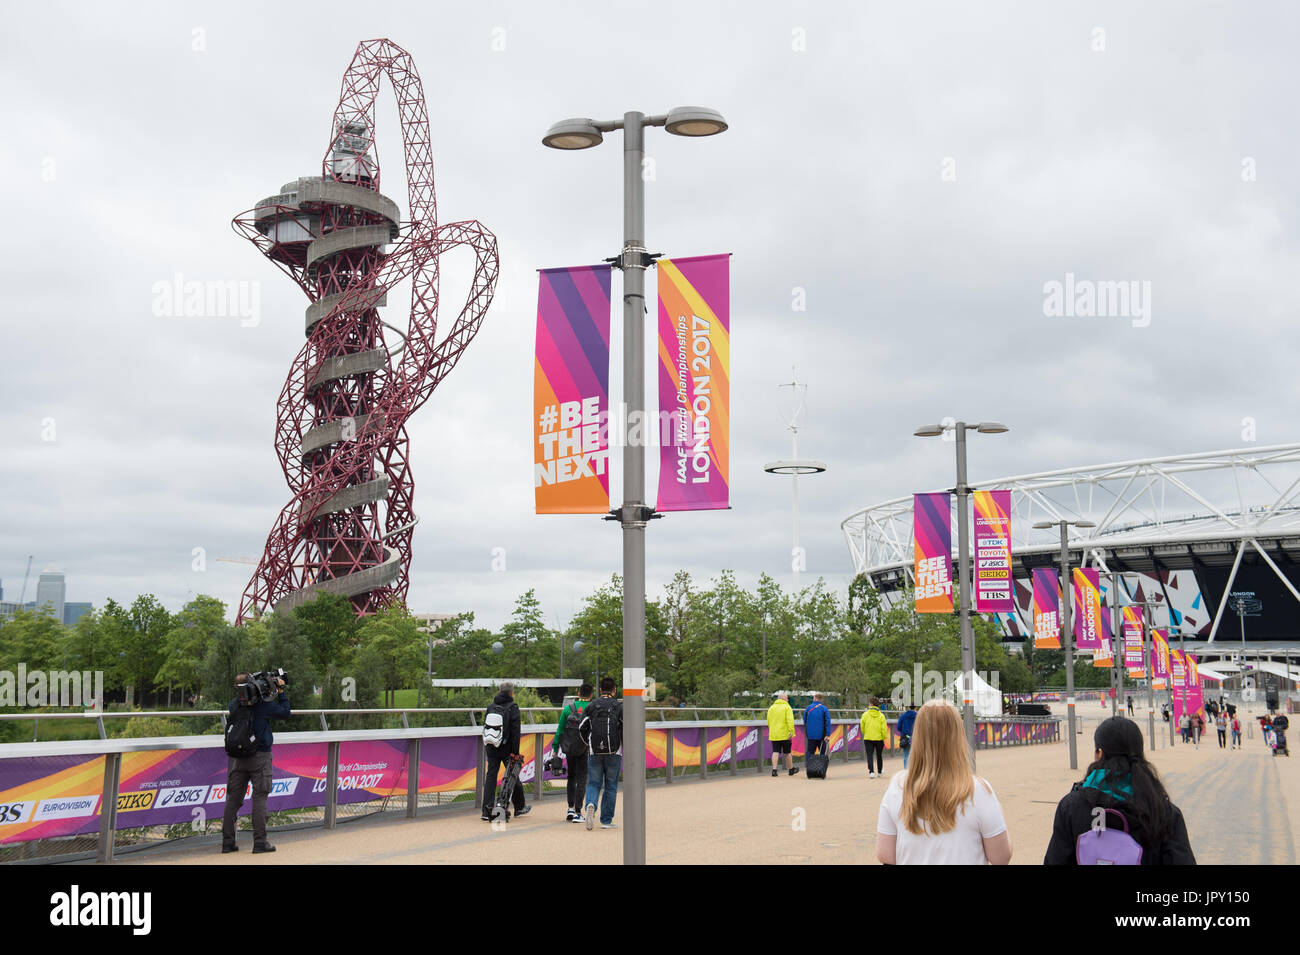 London, UK. 2nd Aug, 2017. People walk by the Olympic Stadium in the Olympic Park in London, Britain, on 2 August Stock Photo